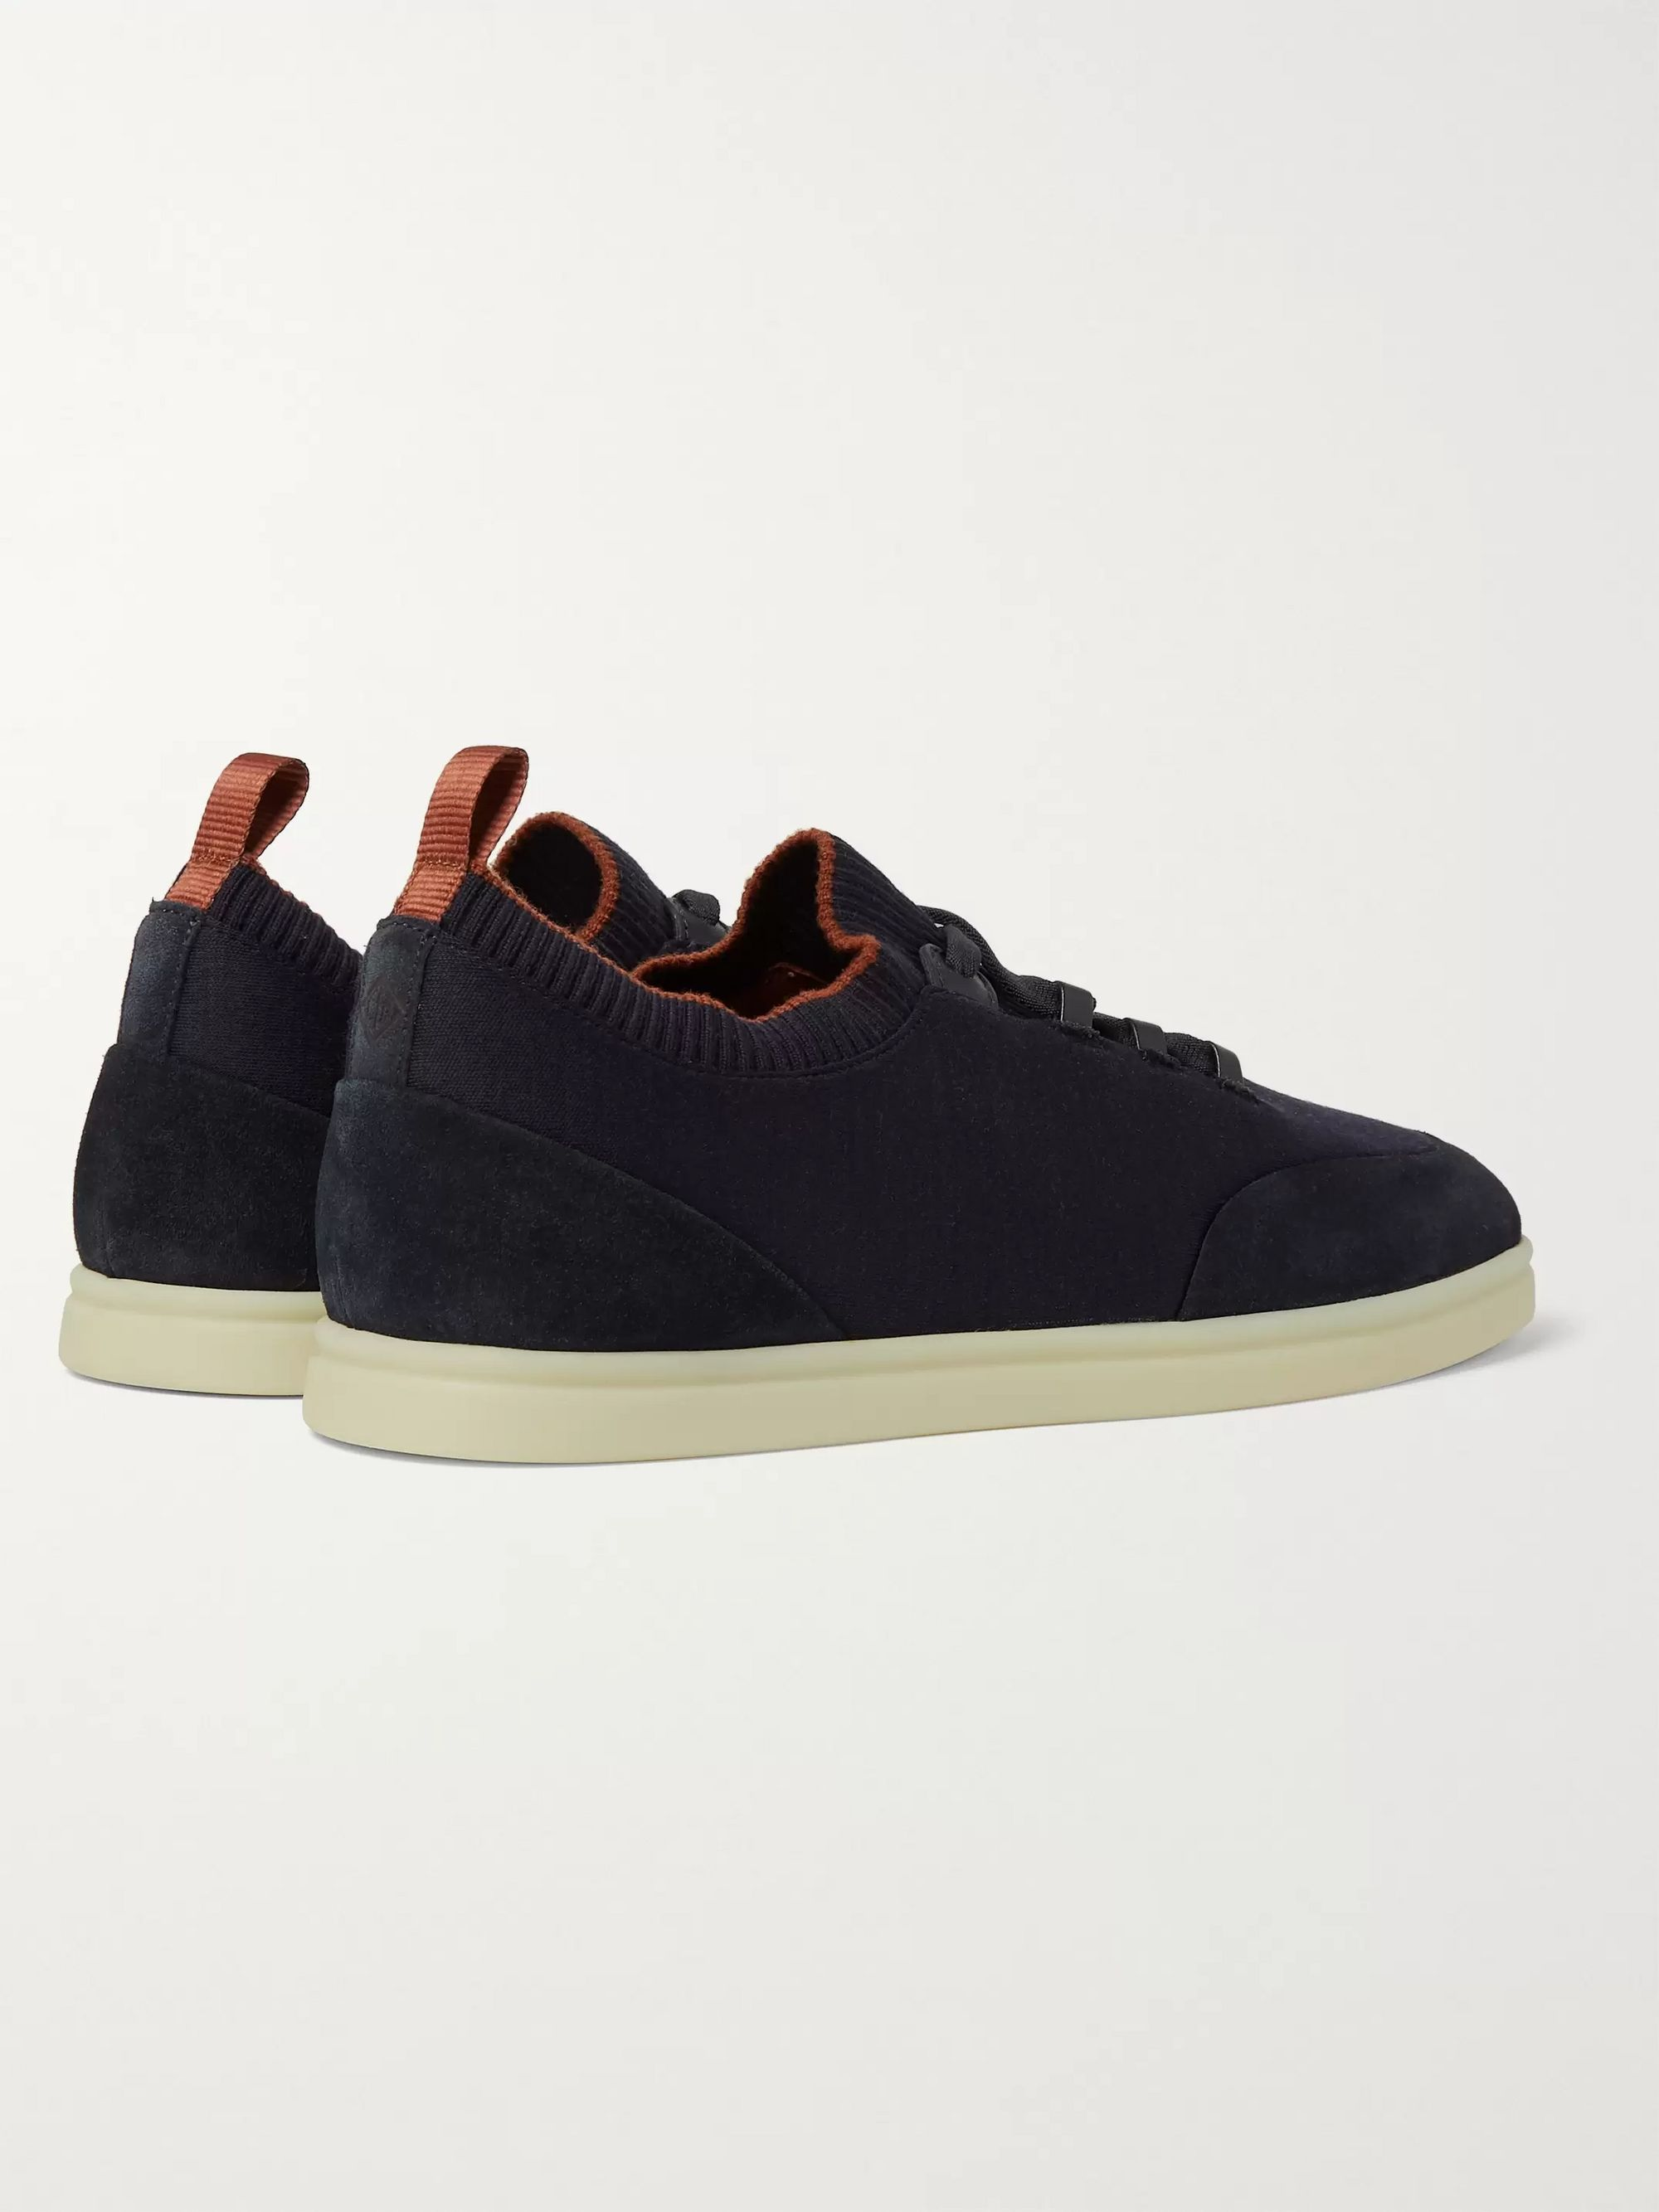 Loro Piana Soho Walk Suede-Trimmed Merino Wool Sneakers